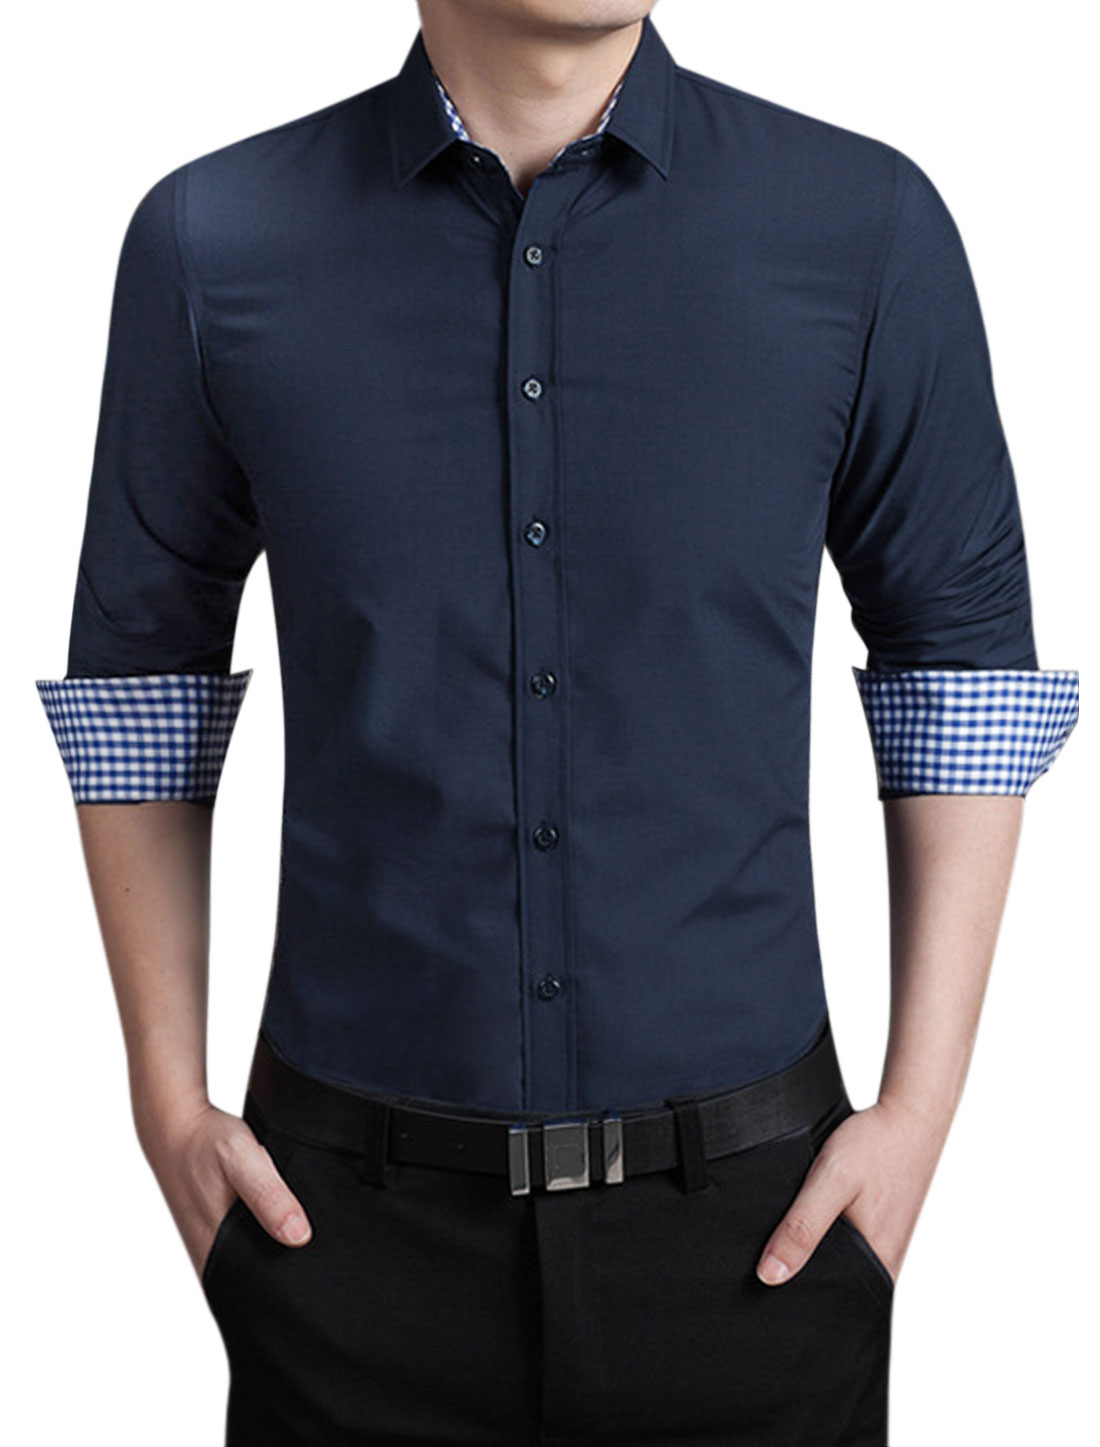 Men Point Collar Slim Fit Button Closed Shirt Navy Blue M